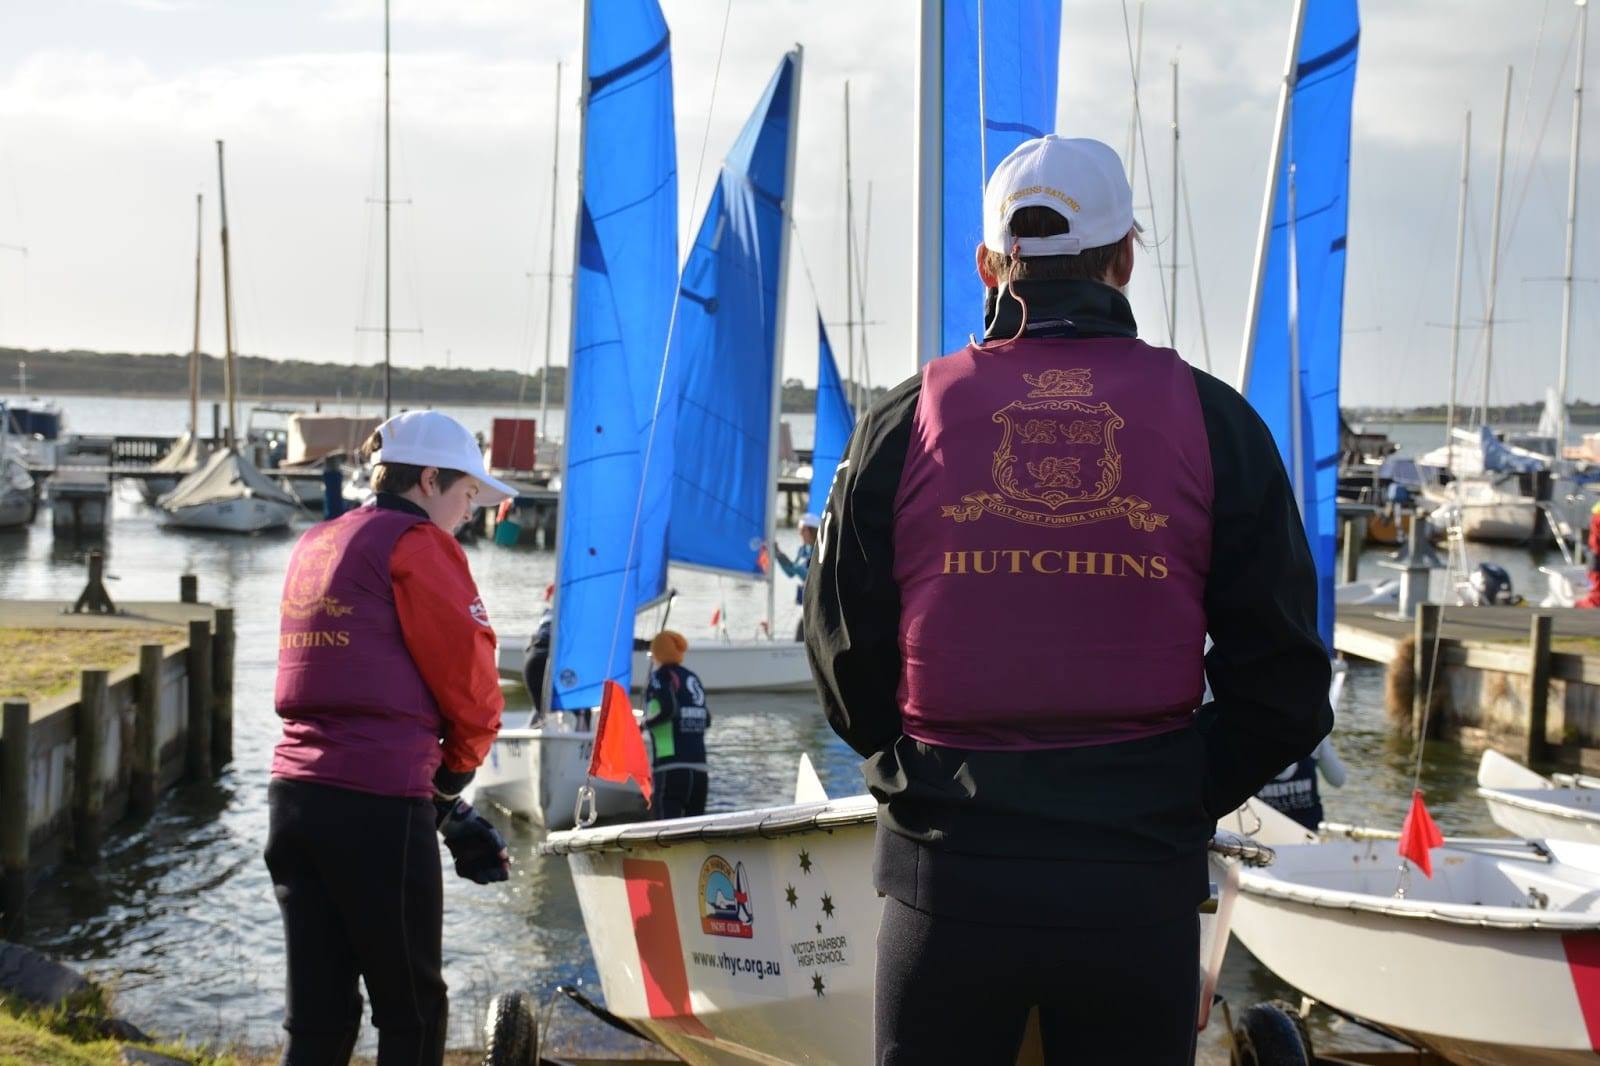 24 teams vying for national team sailing honours